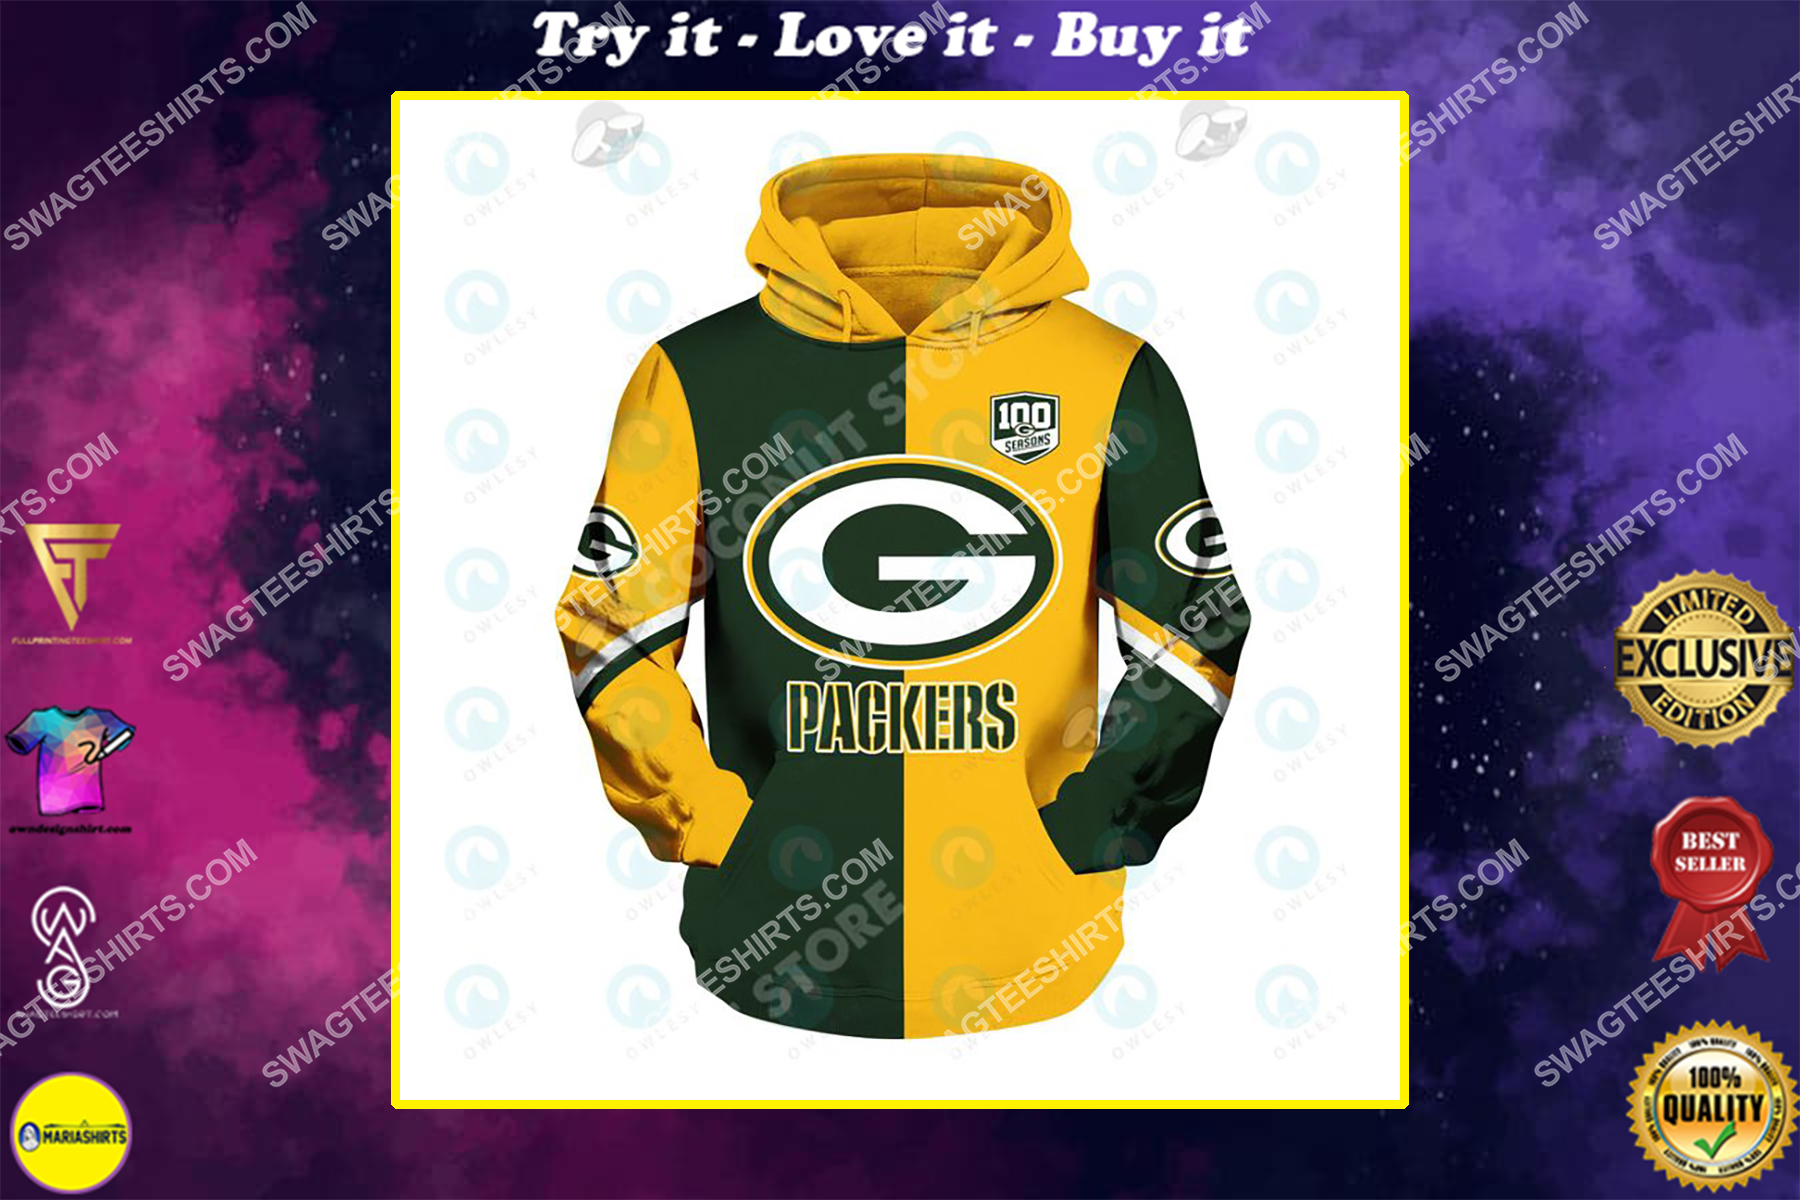 the football team green bay packers all over printed shirt